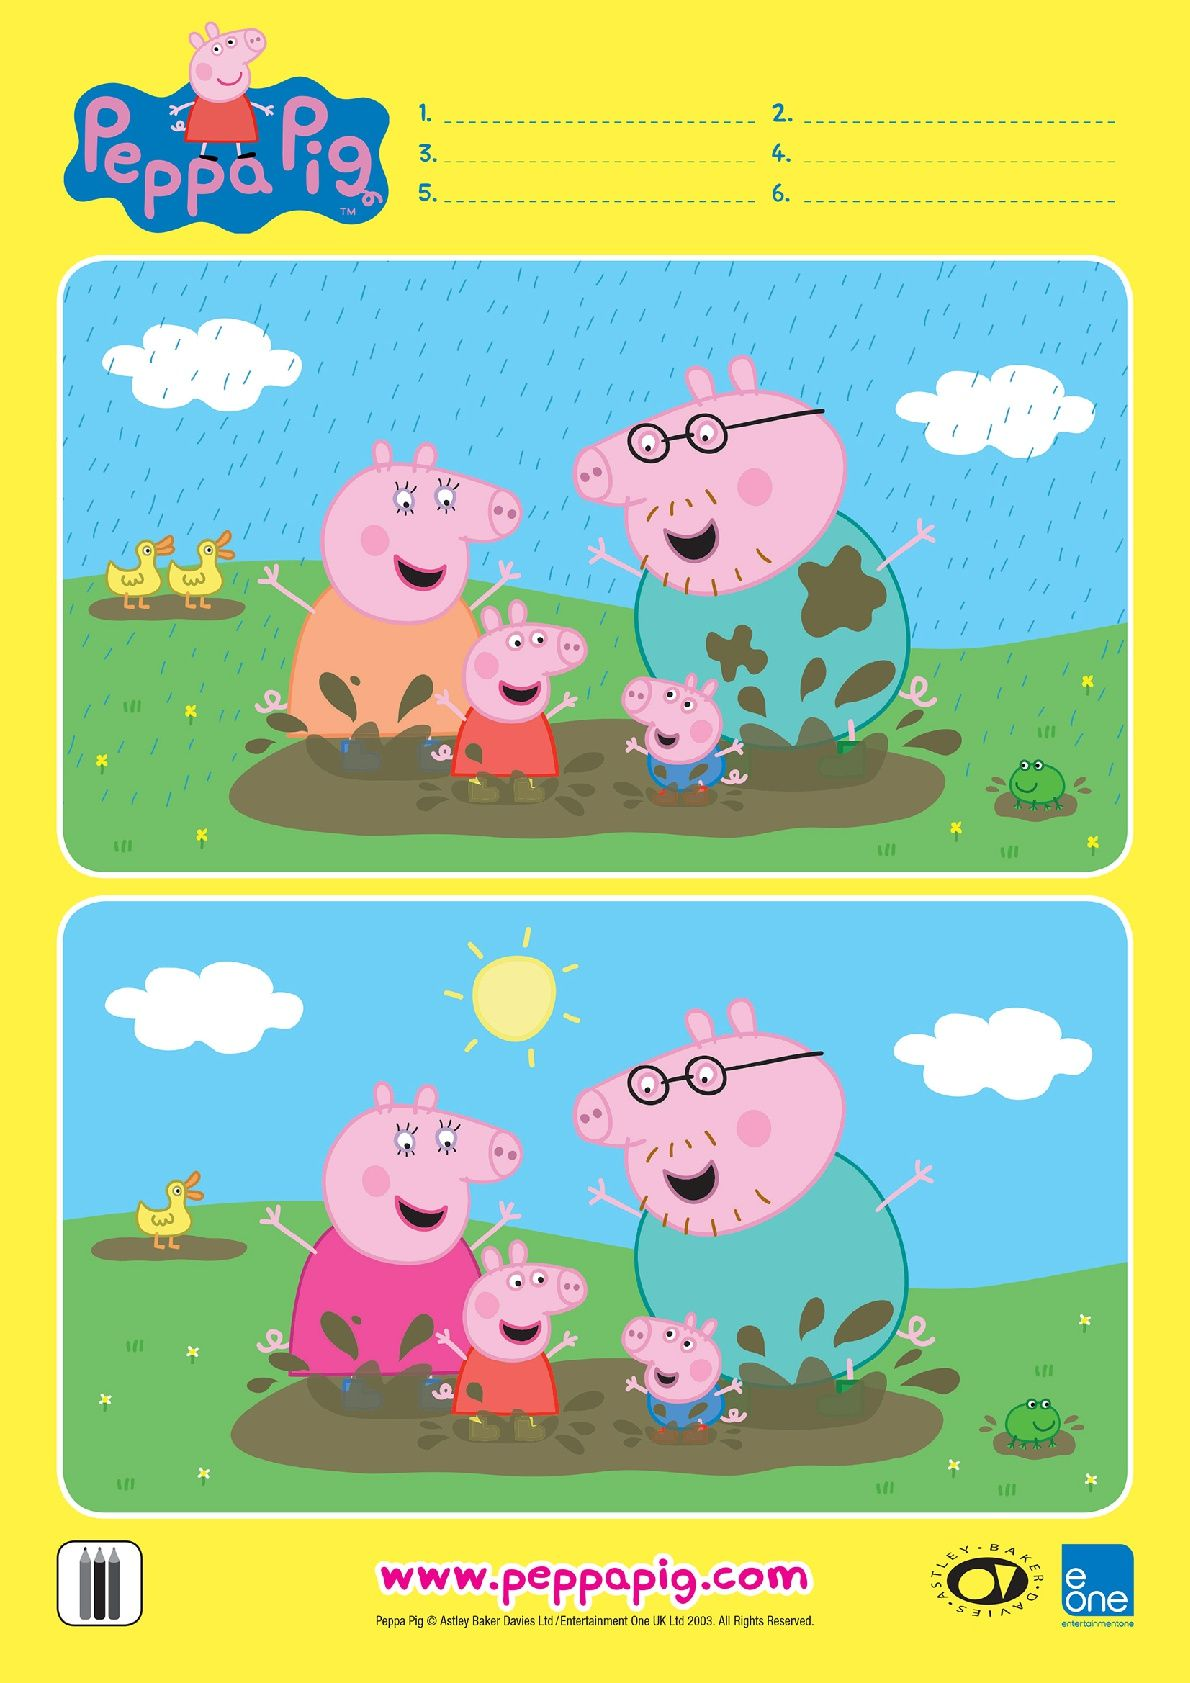 Pin By Crystal Meisenhelder On Differences Otlichiya Peppa Pig Printables Peppa Pig Birthday Party Rainy Day Activities [ 1683 x 1190 Pixel ]